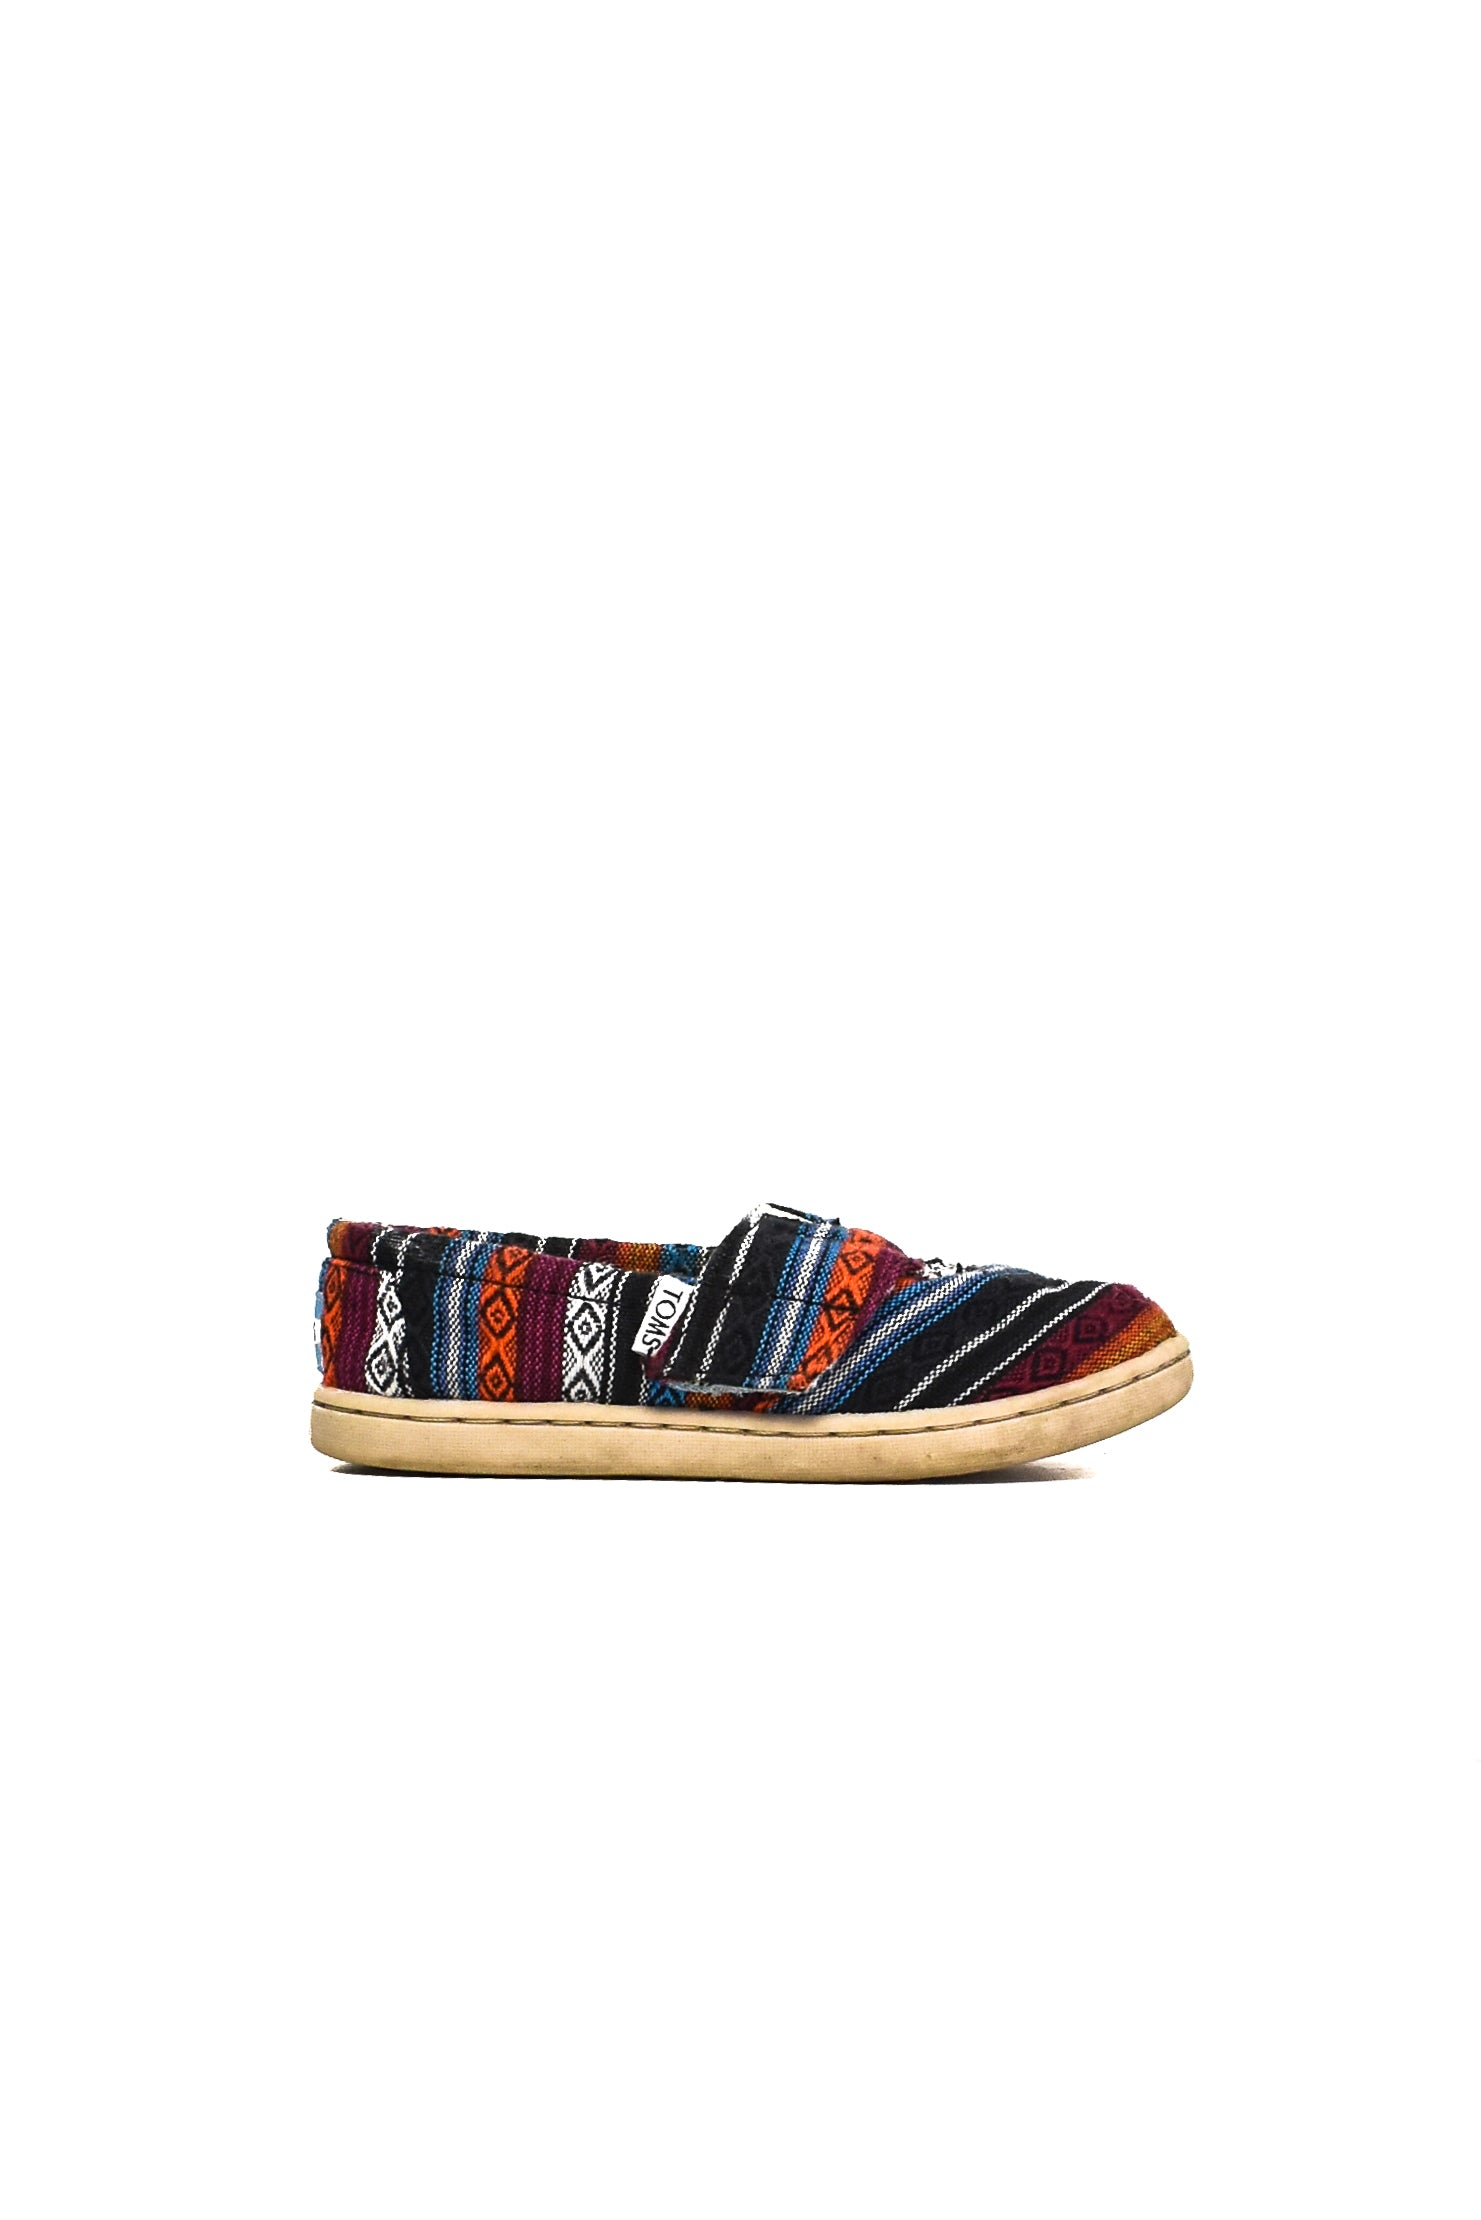 10006450 Toms Kids~Shoes 3-4T (US 9) at Retykle